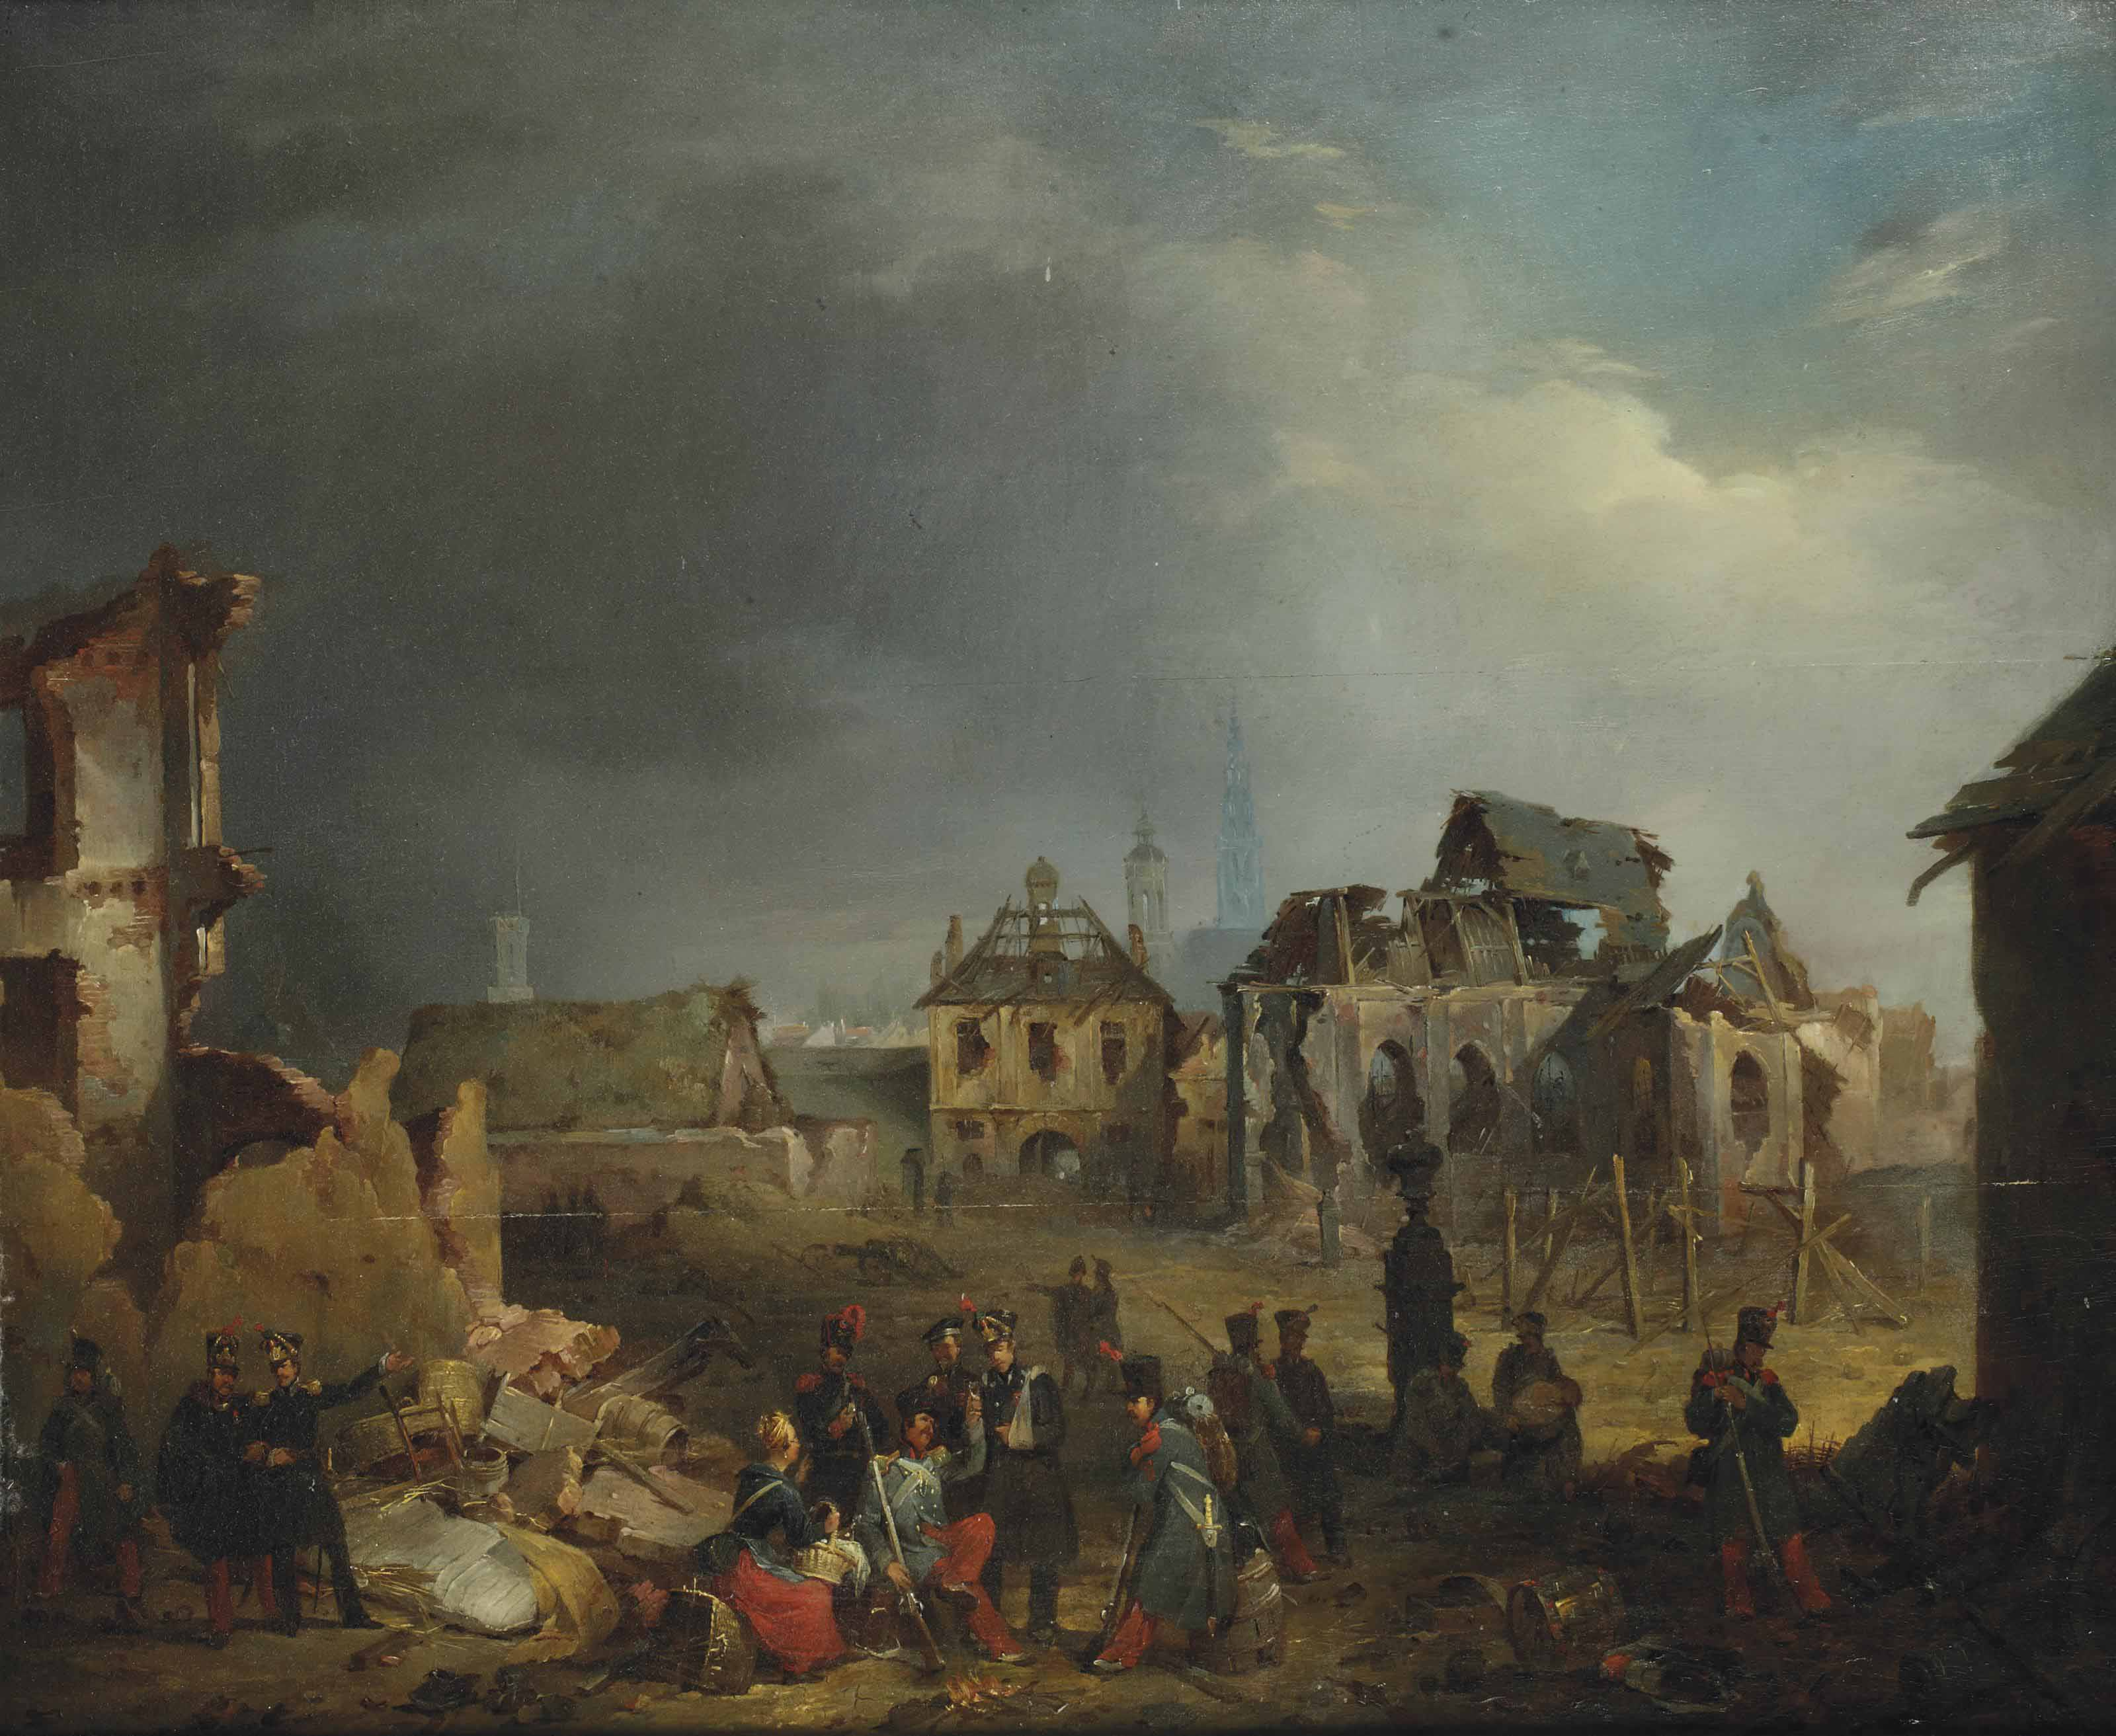 After the bombardment of Antwerp in 1830